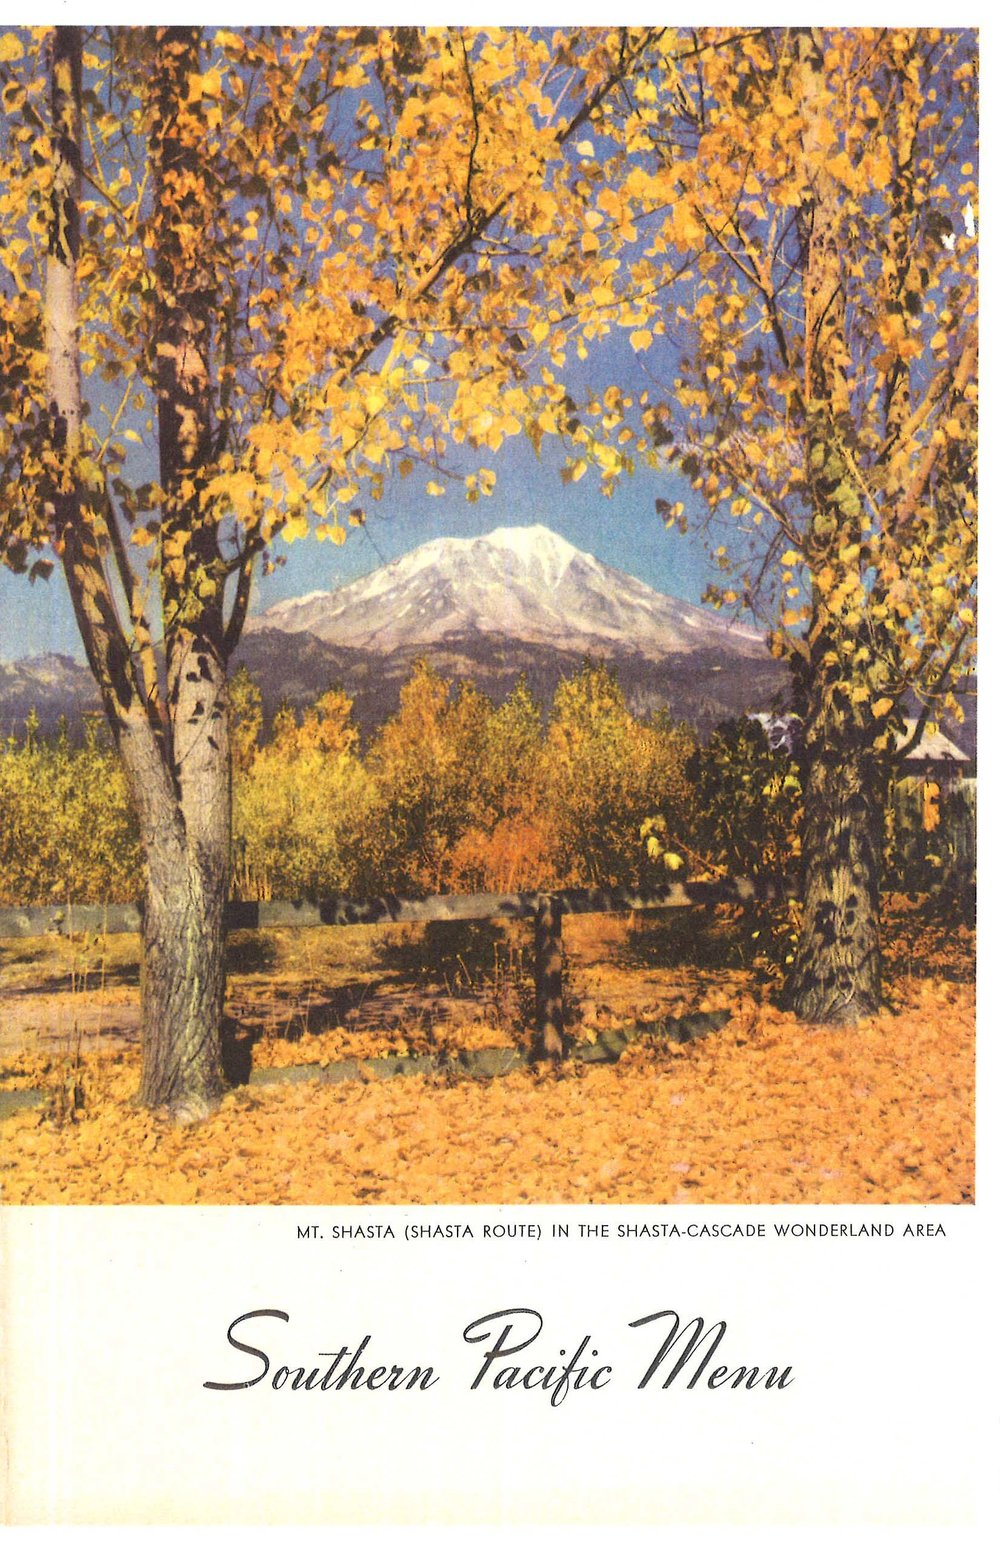 SP+Mt.+Shasta+Shasta-Cascade+Wonderland+Area+Lunch+Menu+7-48 1a.jpg